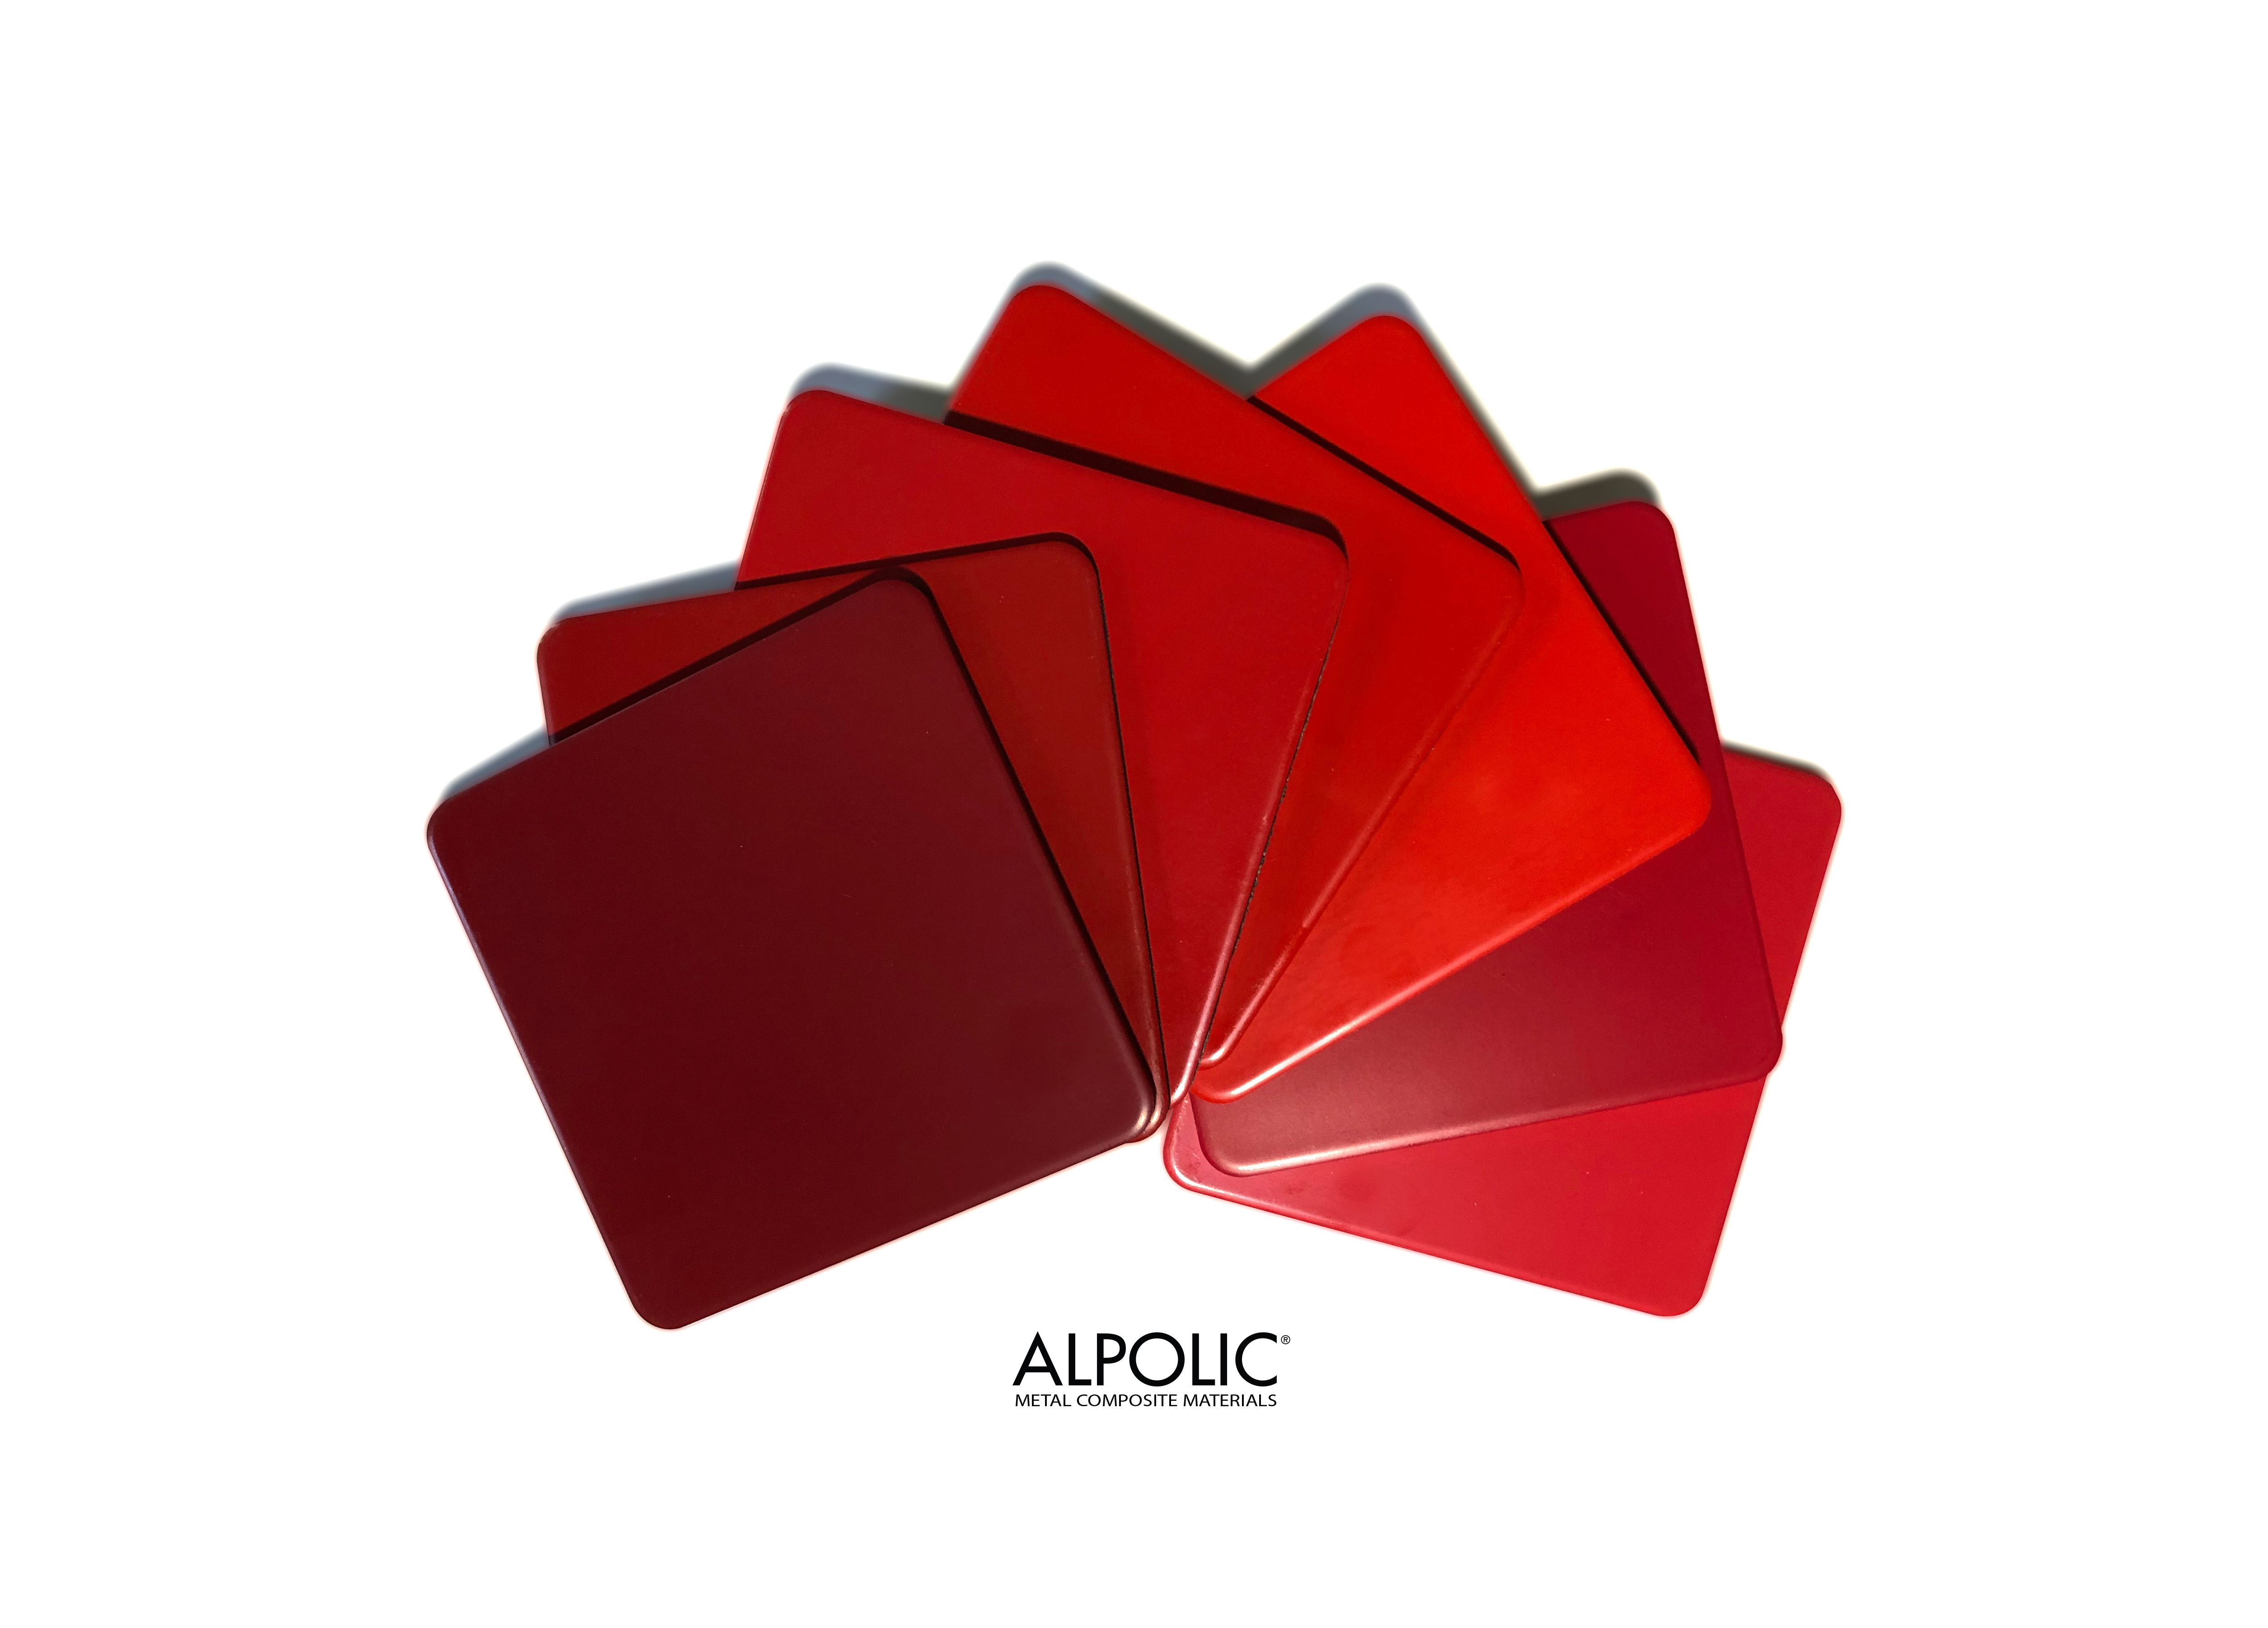 Red Is Not Simply Red at ALPOLIC®